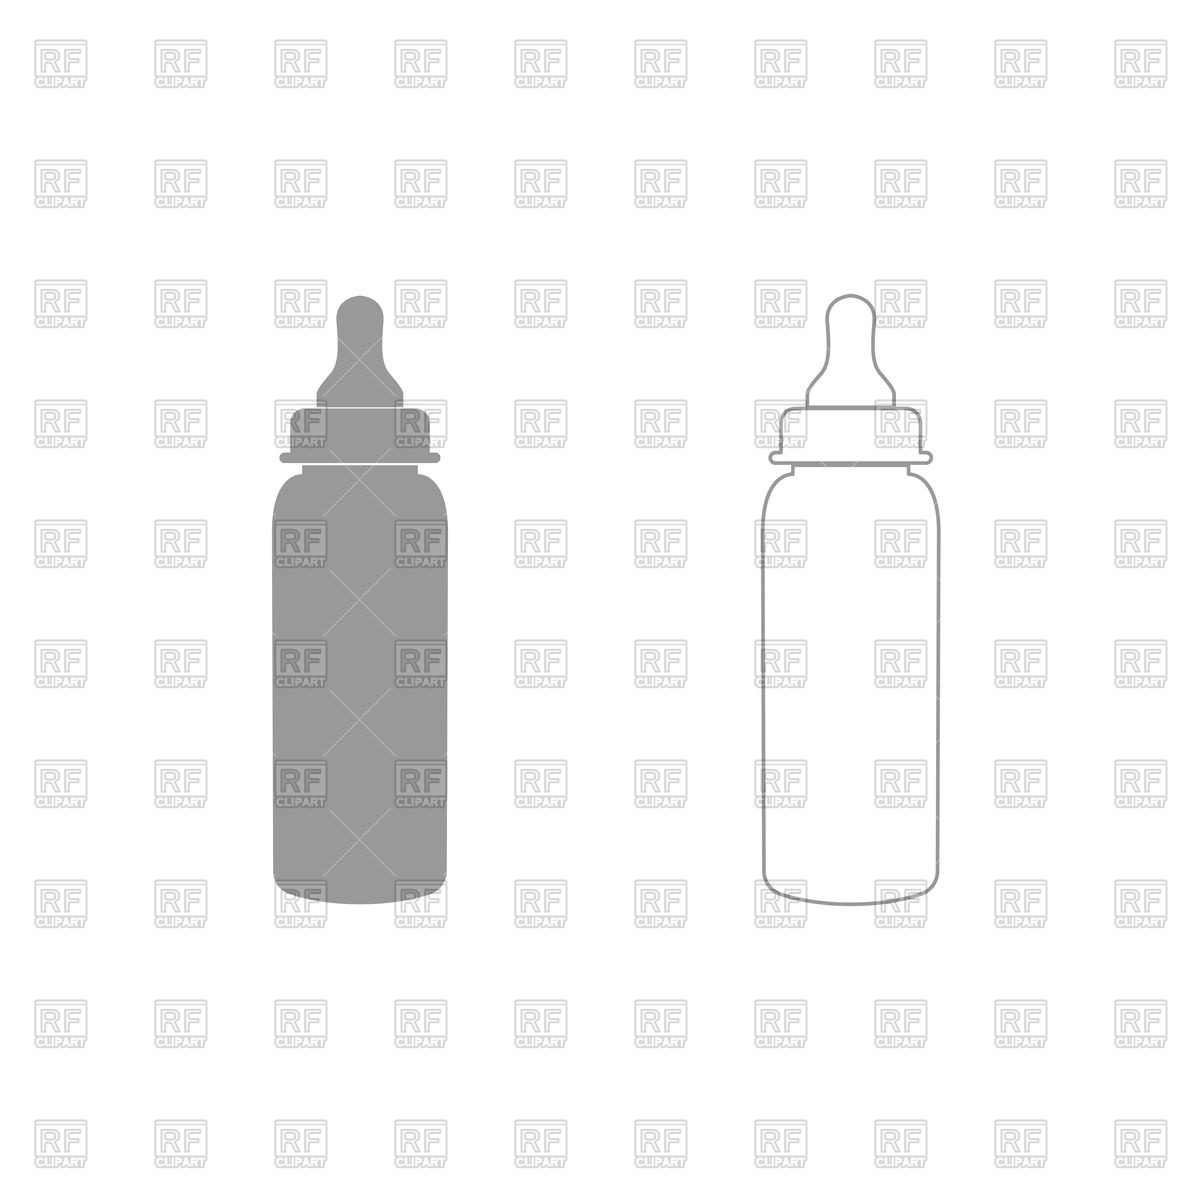 Baby Bottle Silhouette And Outline Vector Image Of Objects